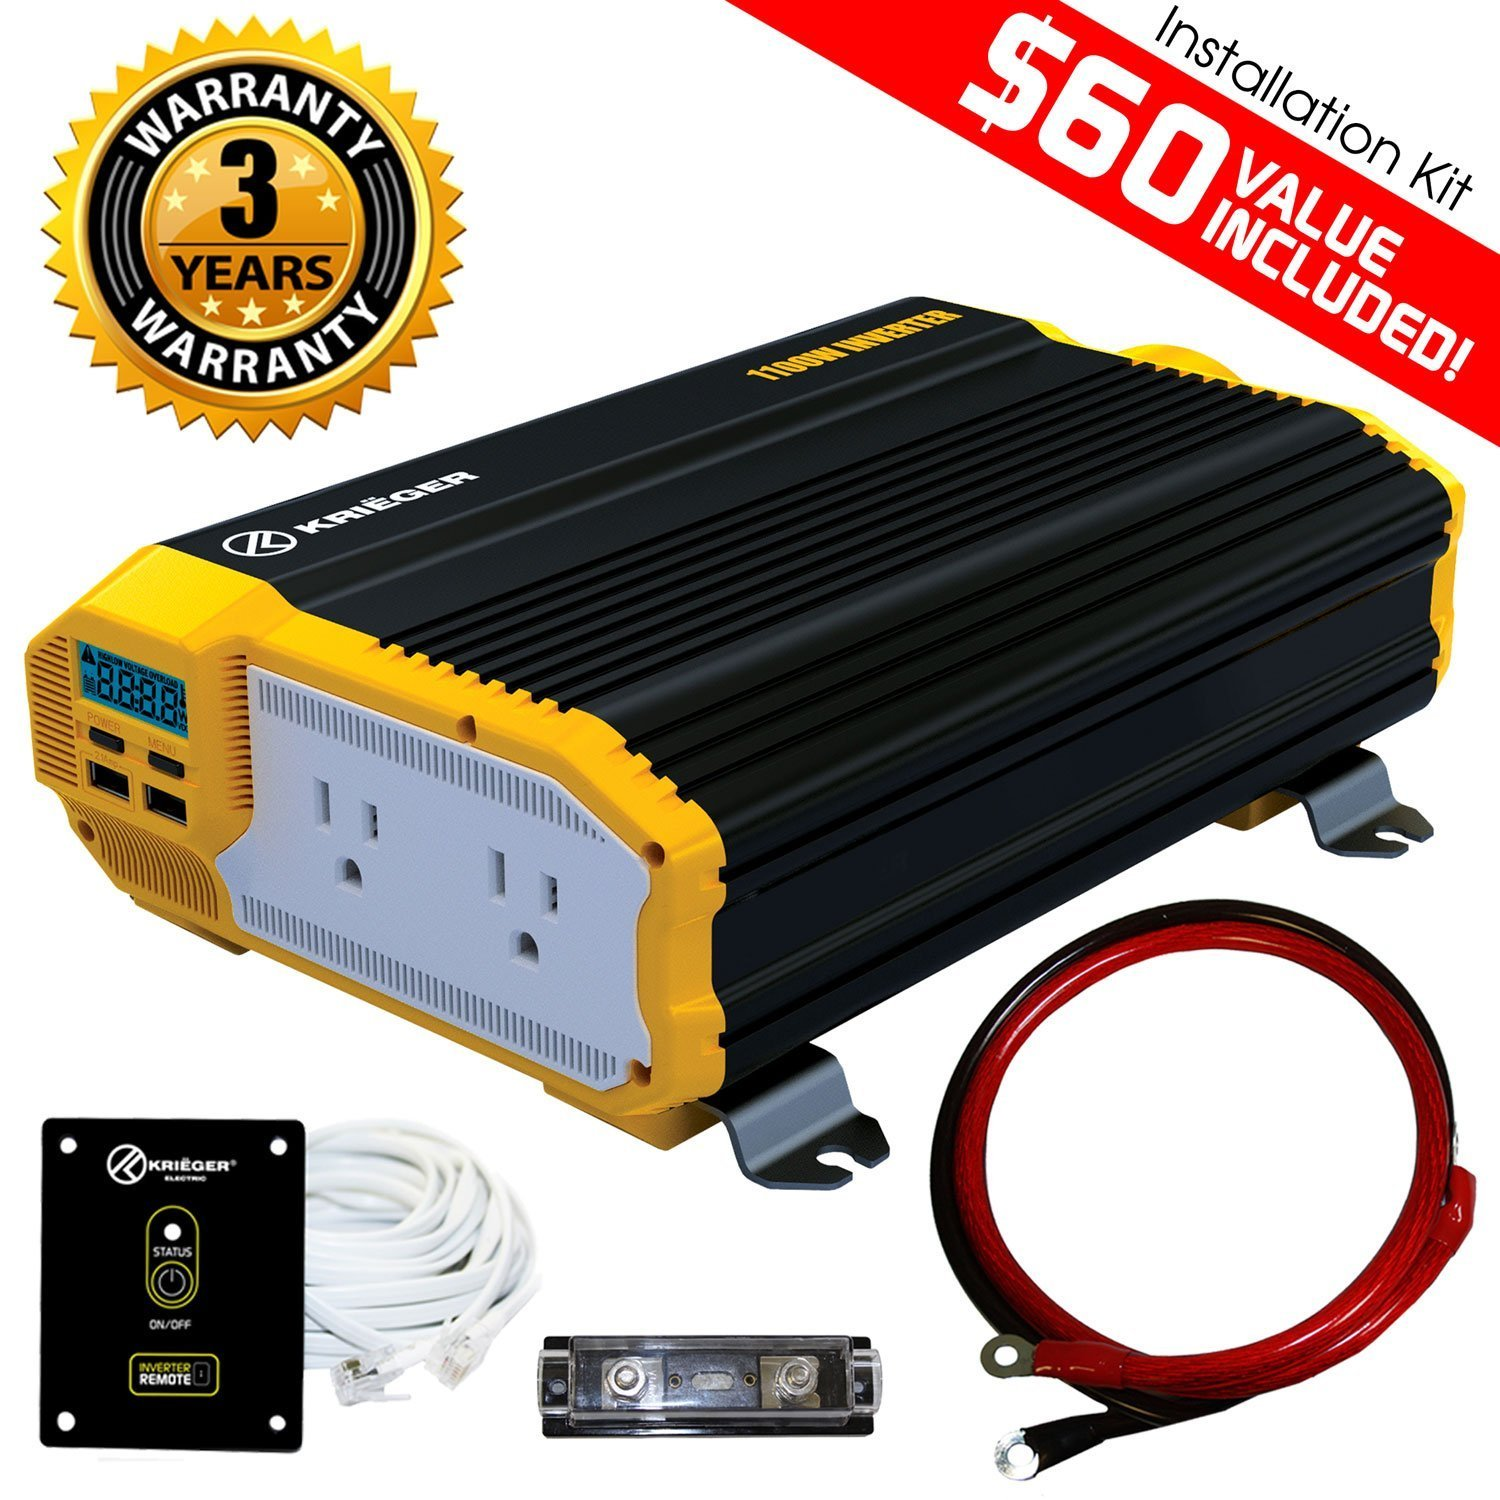 Kriger 1100 Watt 12v Power Inverter Dual 110v Ac Vehicle Wiring Diagram Outlets Installation Kit Included Automotive Back Up Supply For Blenders Vacuums